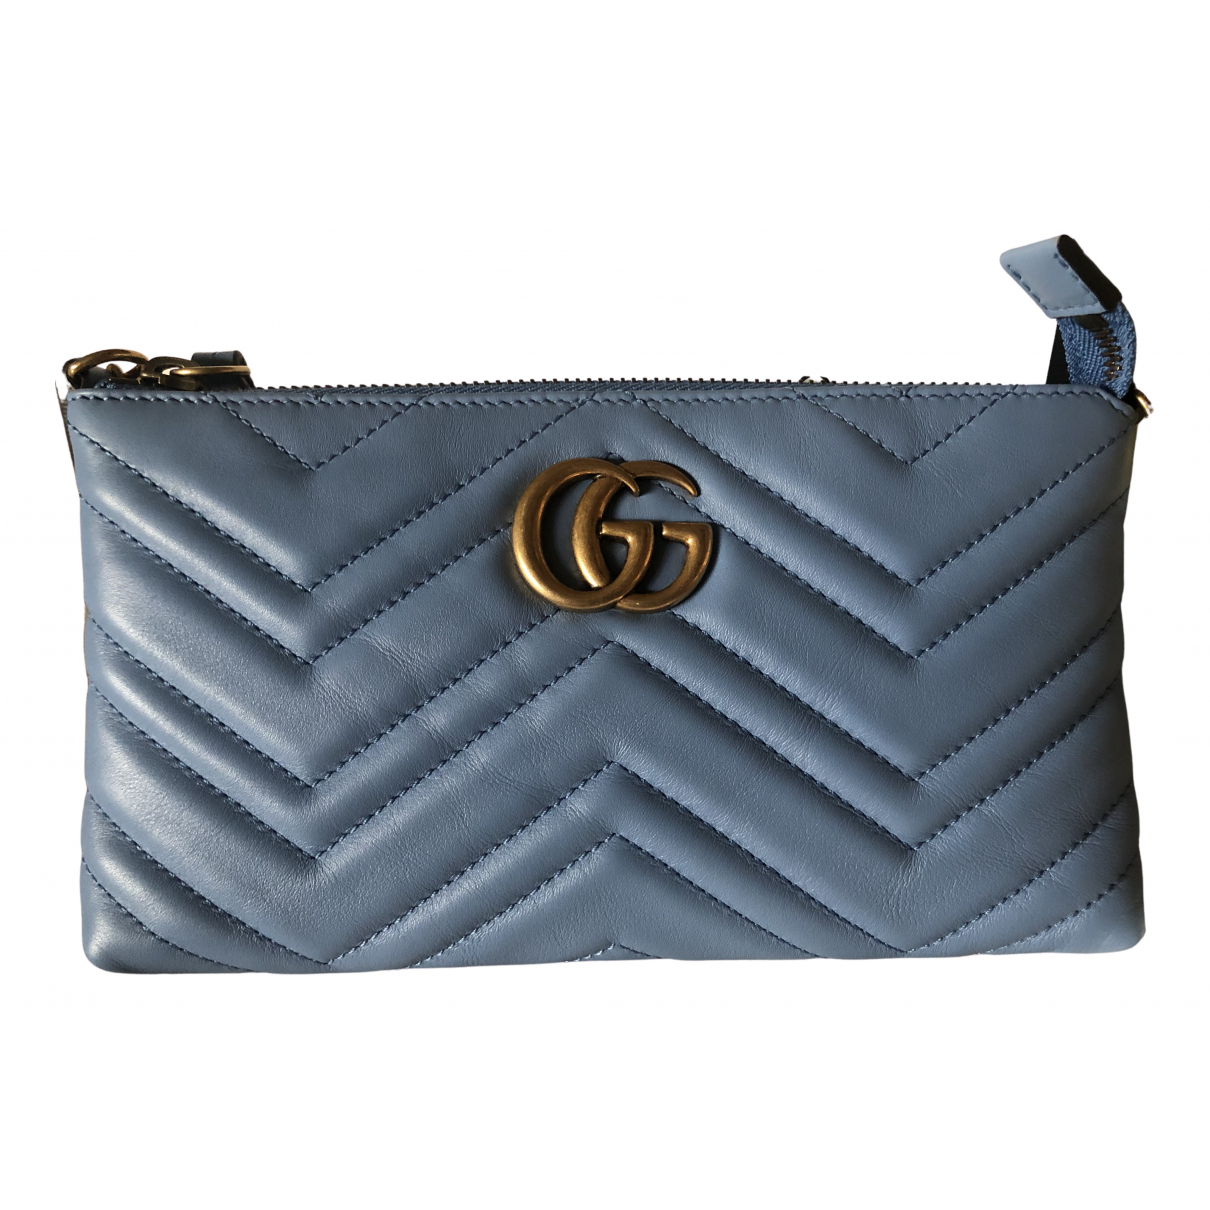 Gucci Marmont Blue Leather Purses, wallet & cases for Women N